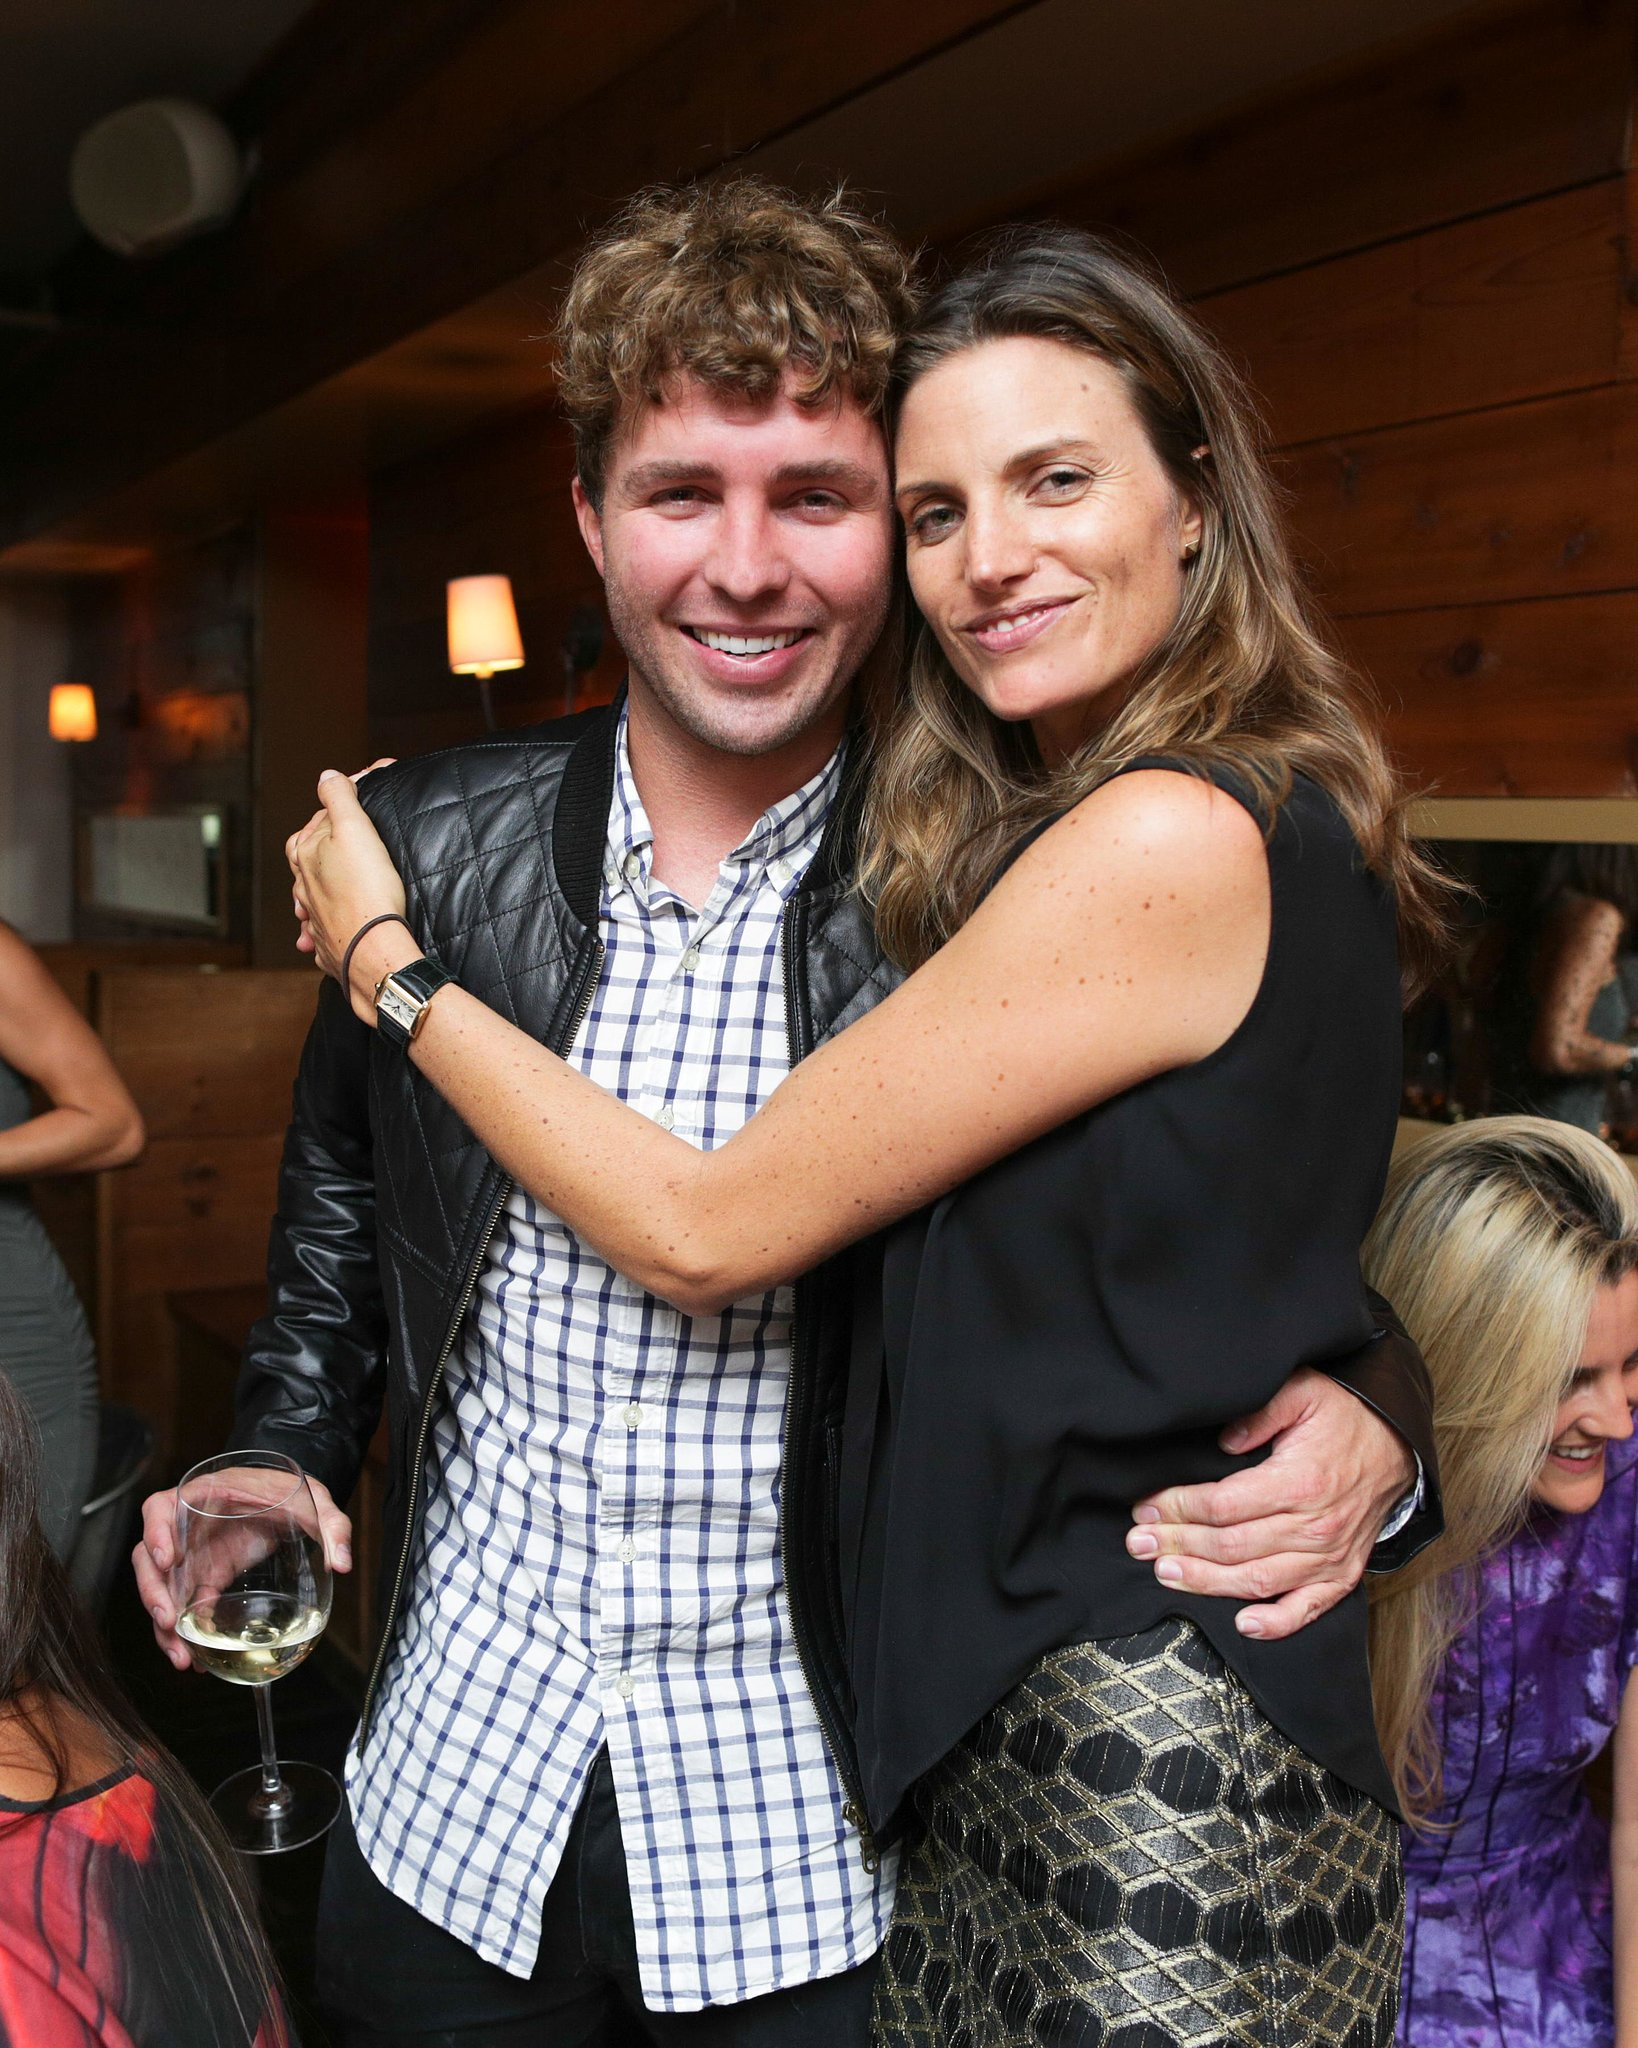 At BDA's Michael Bastian dinner, Timo Weiland got an embrace from Ashley Wick.